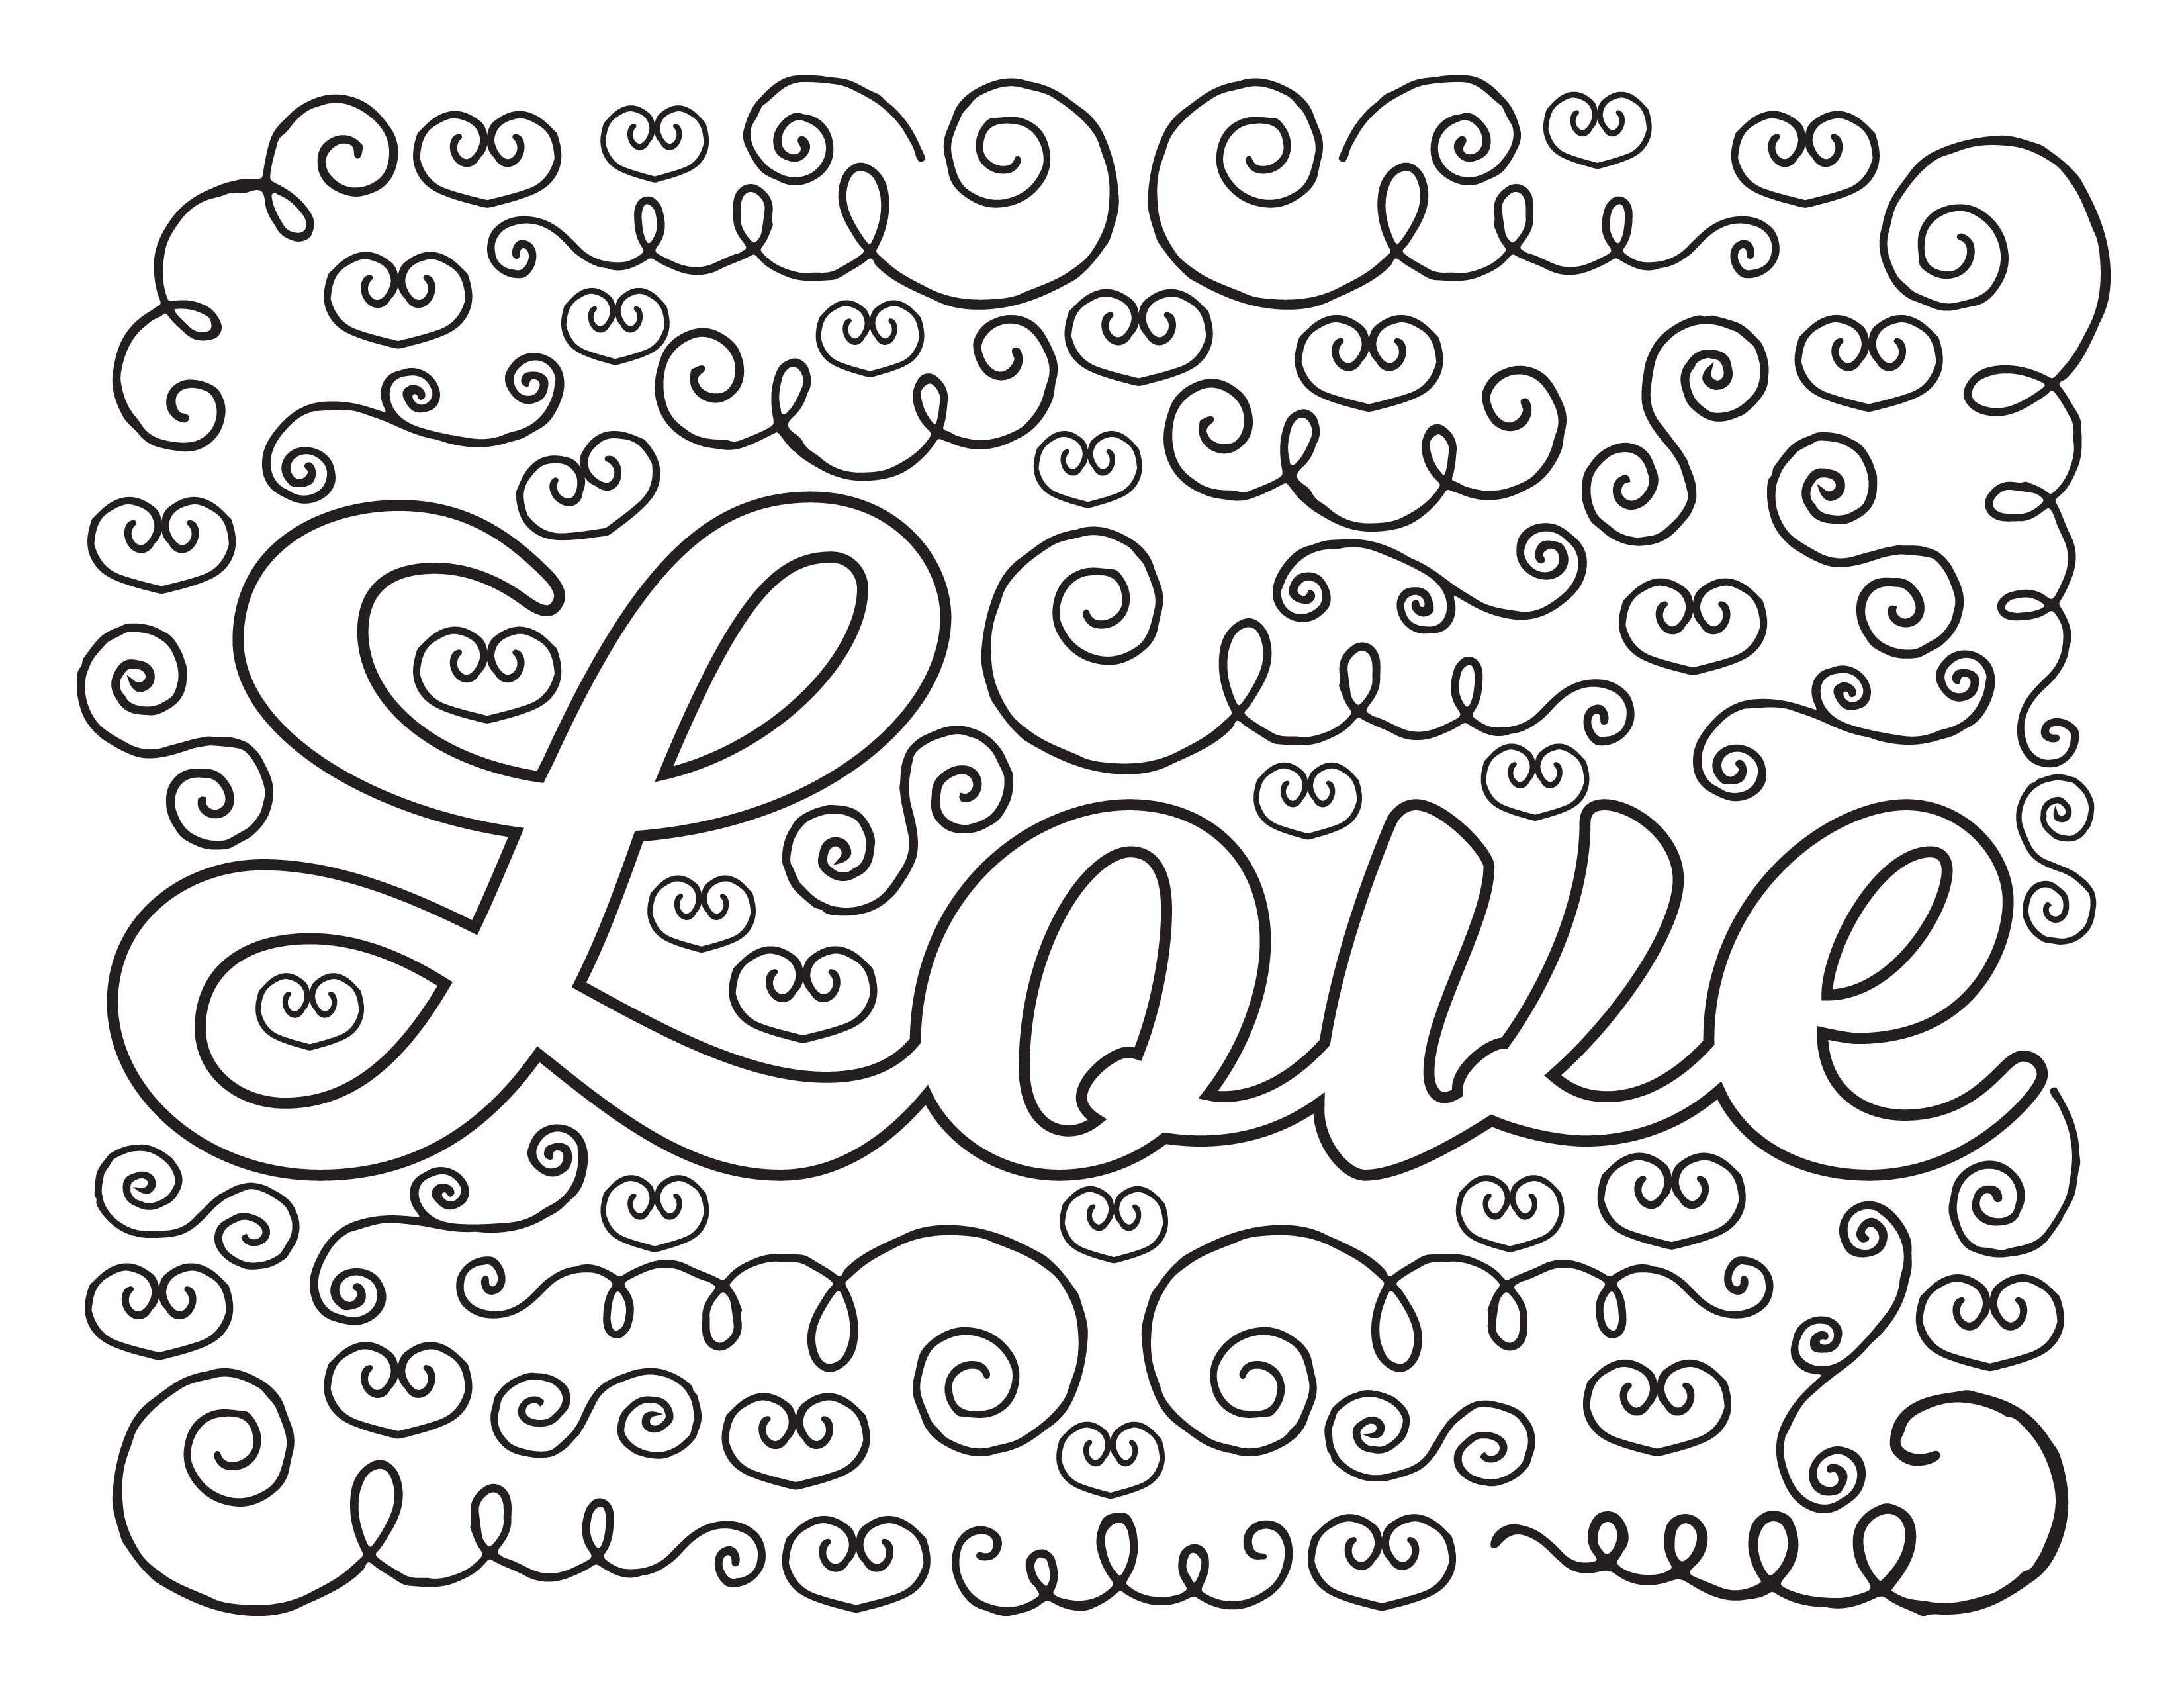 3300x2550 Live Laugh Love Coloring Pages Wallpapers Lobaedesign Com And Umal